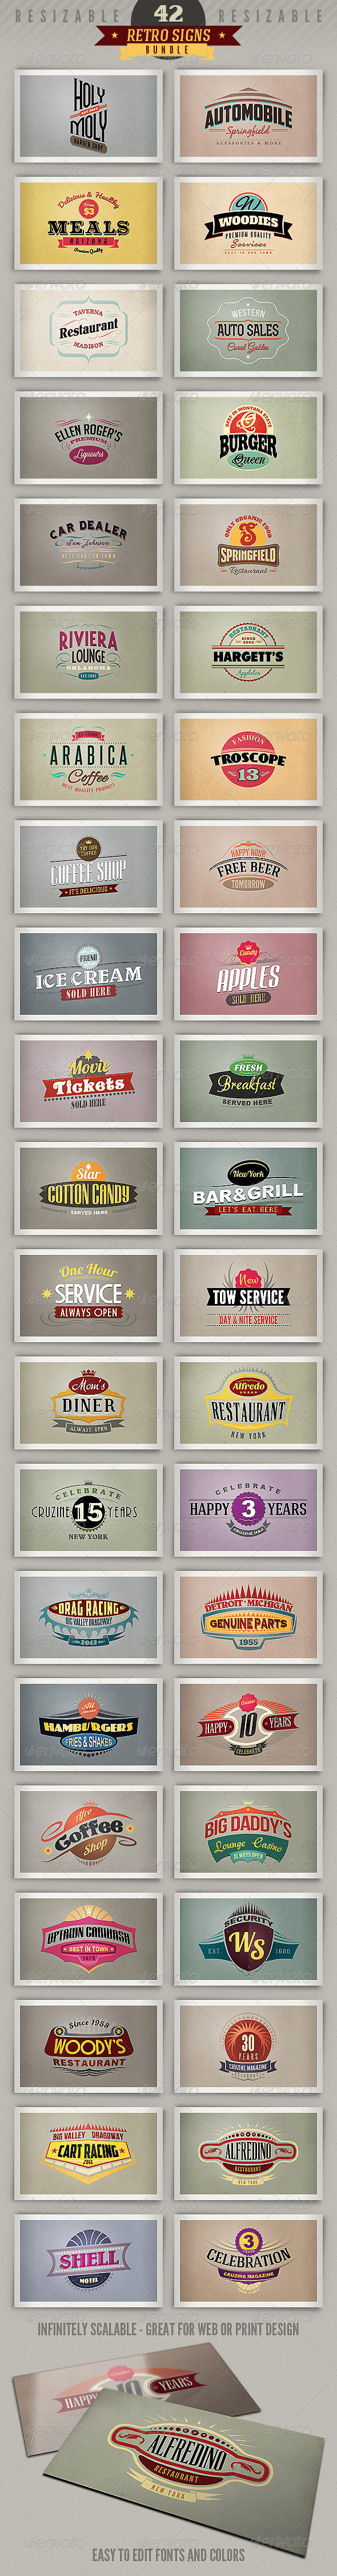 42 Retro Signs or Banners - Bundle - Badges & Stickers Web Elements